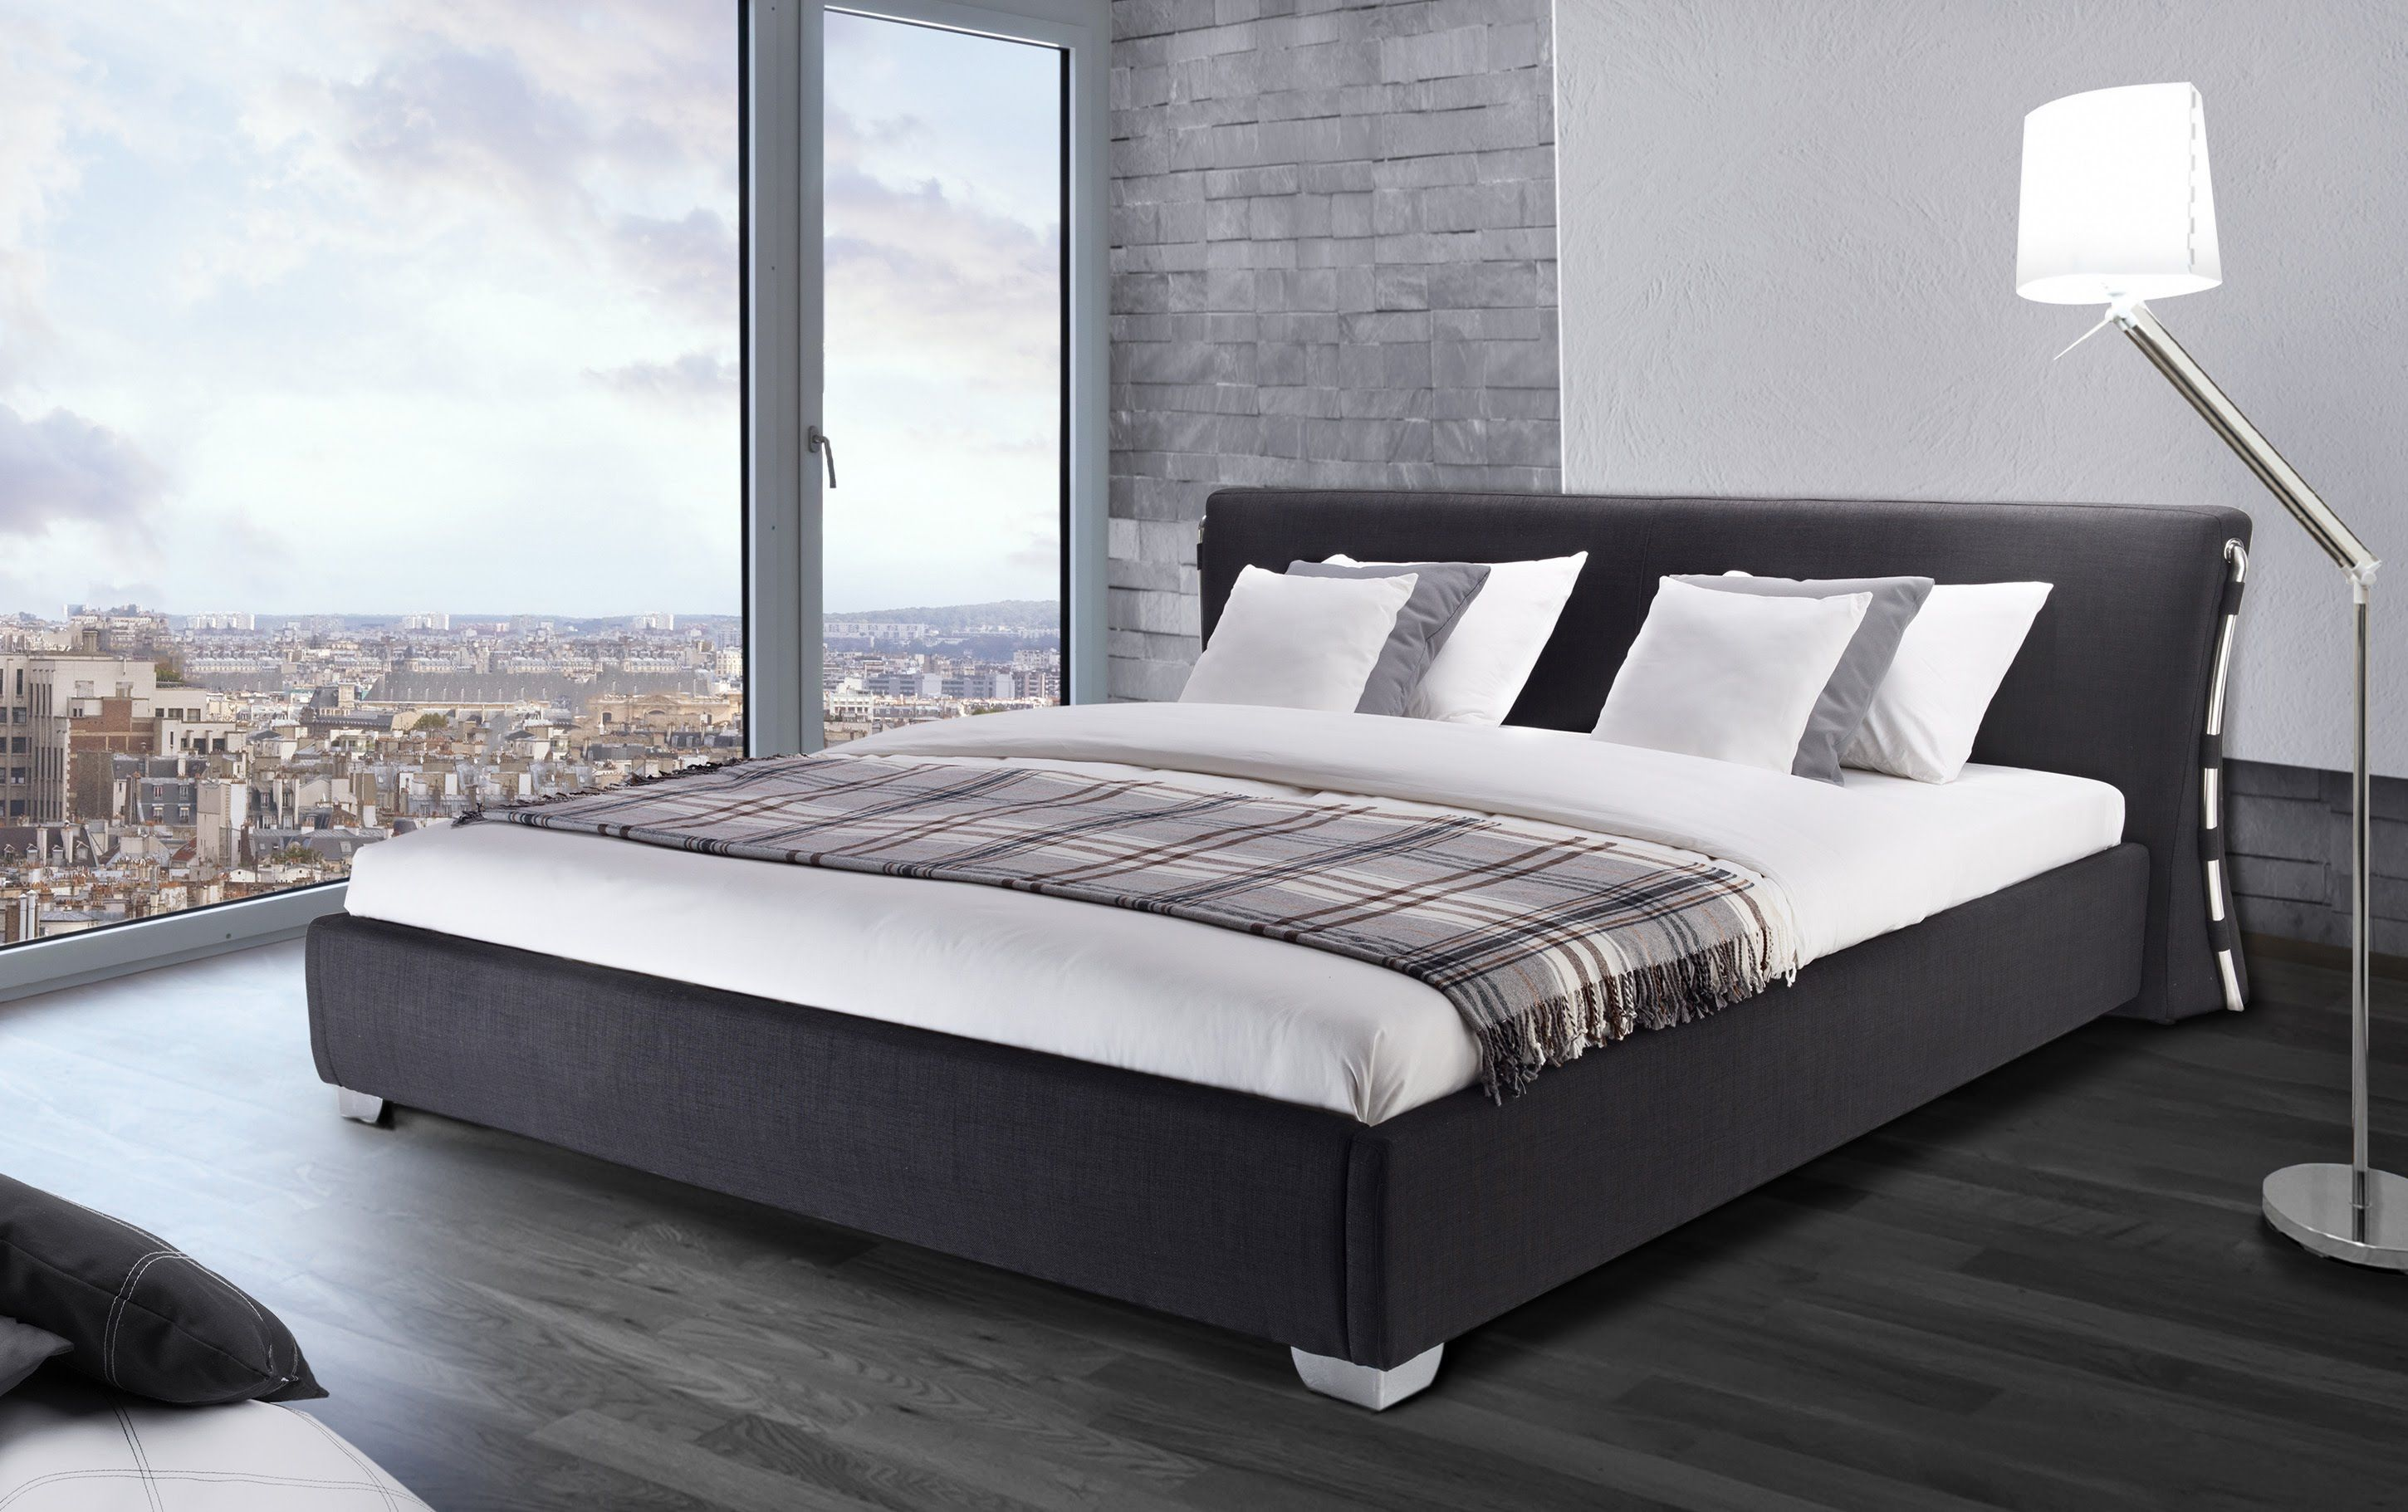 Find A King Size Bed For Your Bedroom In 2020